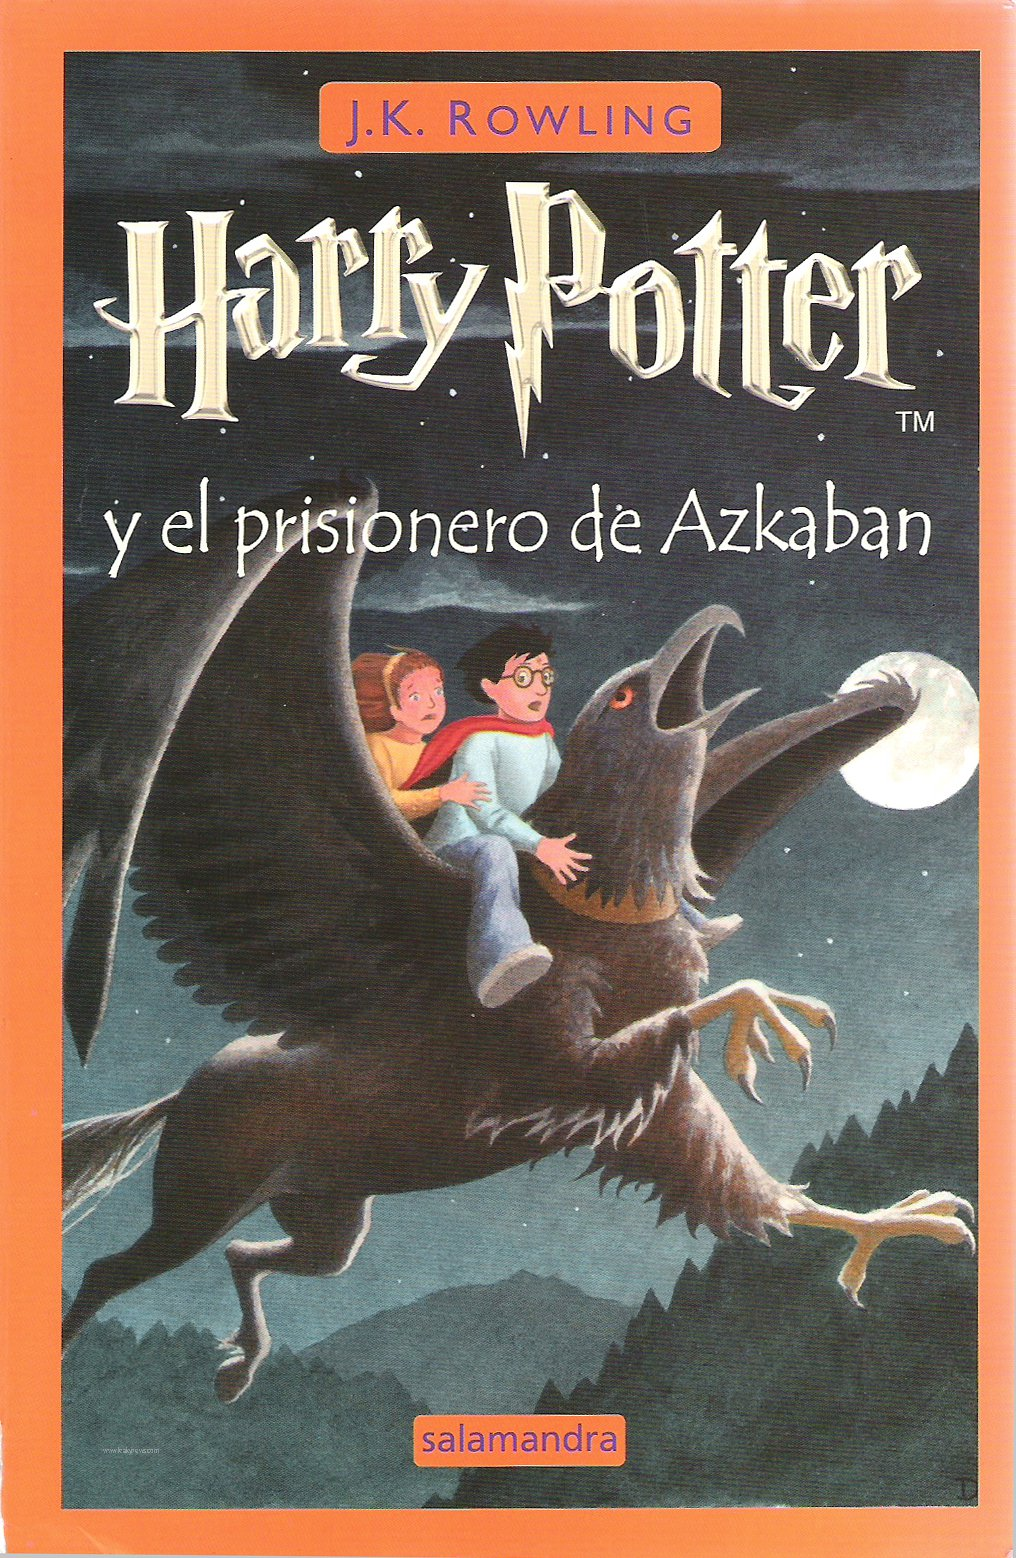 65. Harry Potter y el prisionero de Azkaban